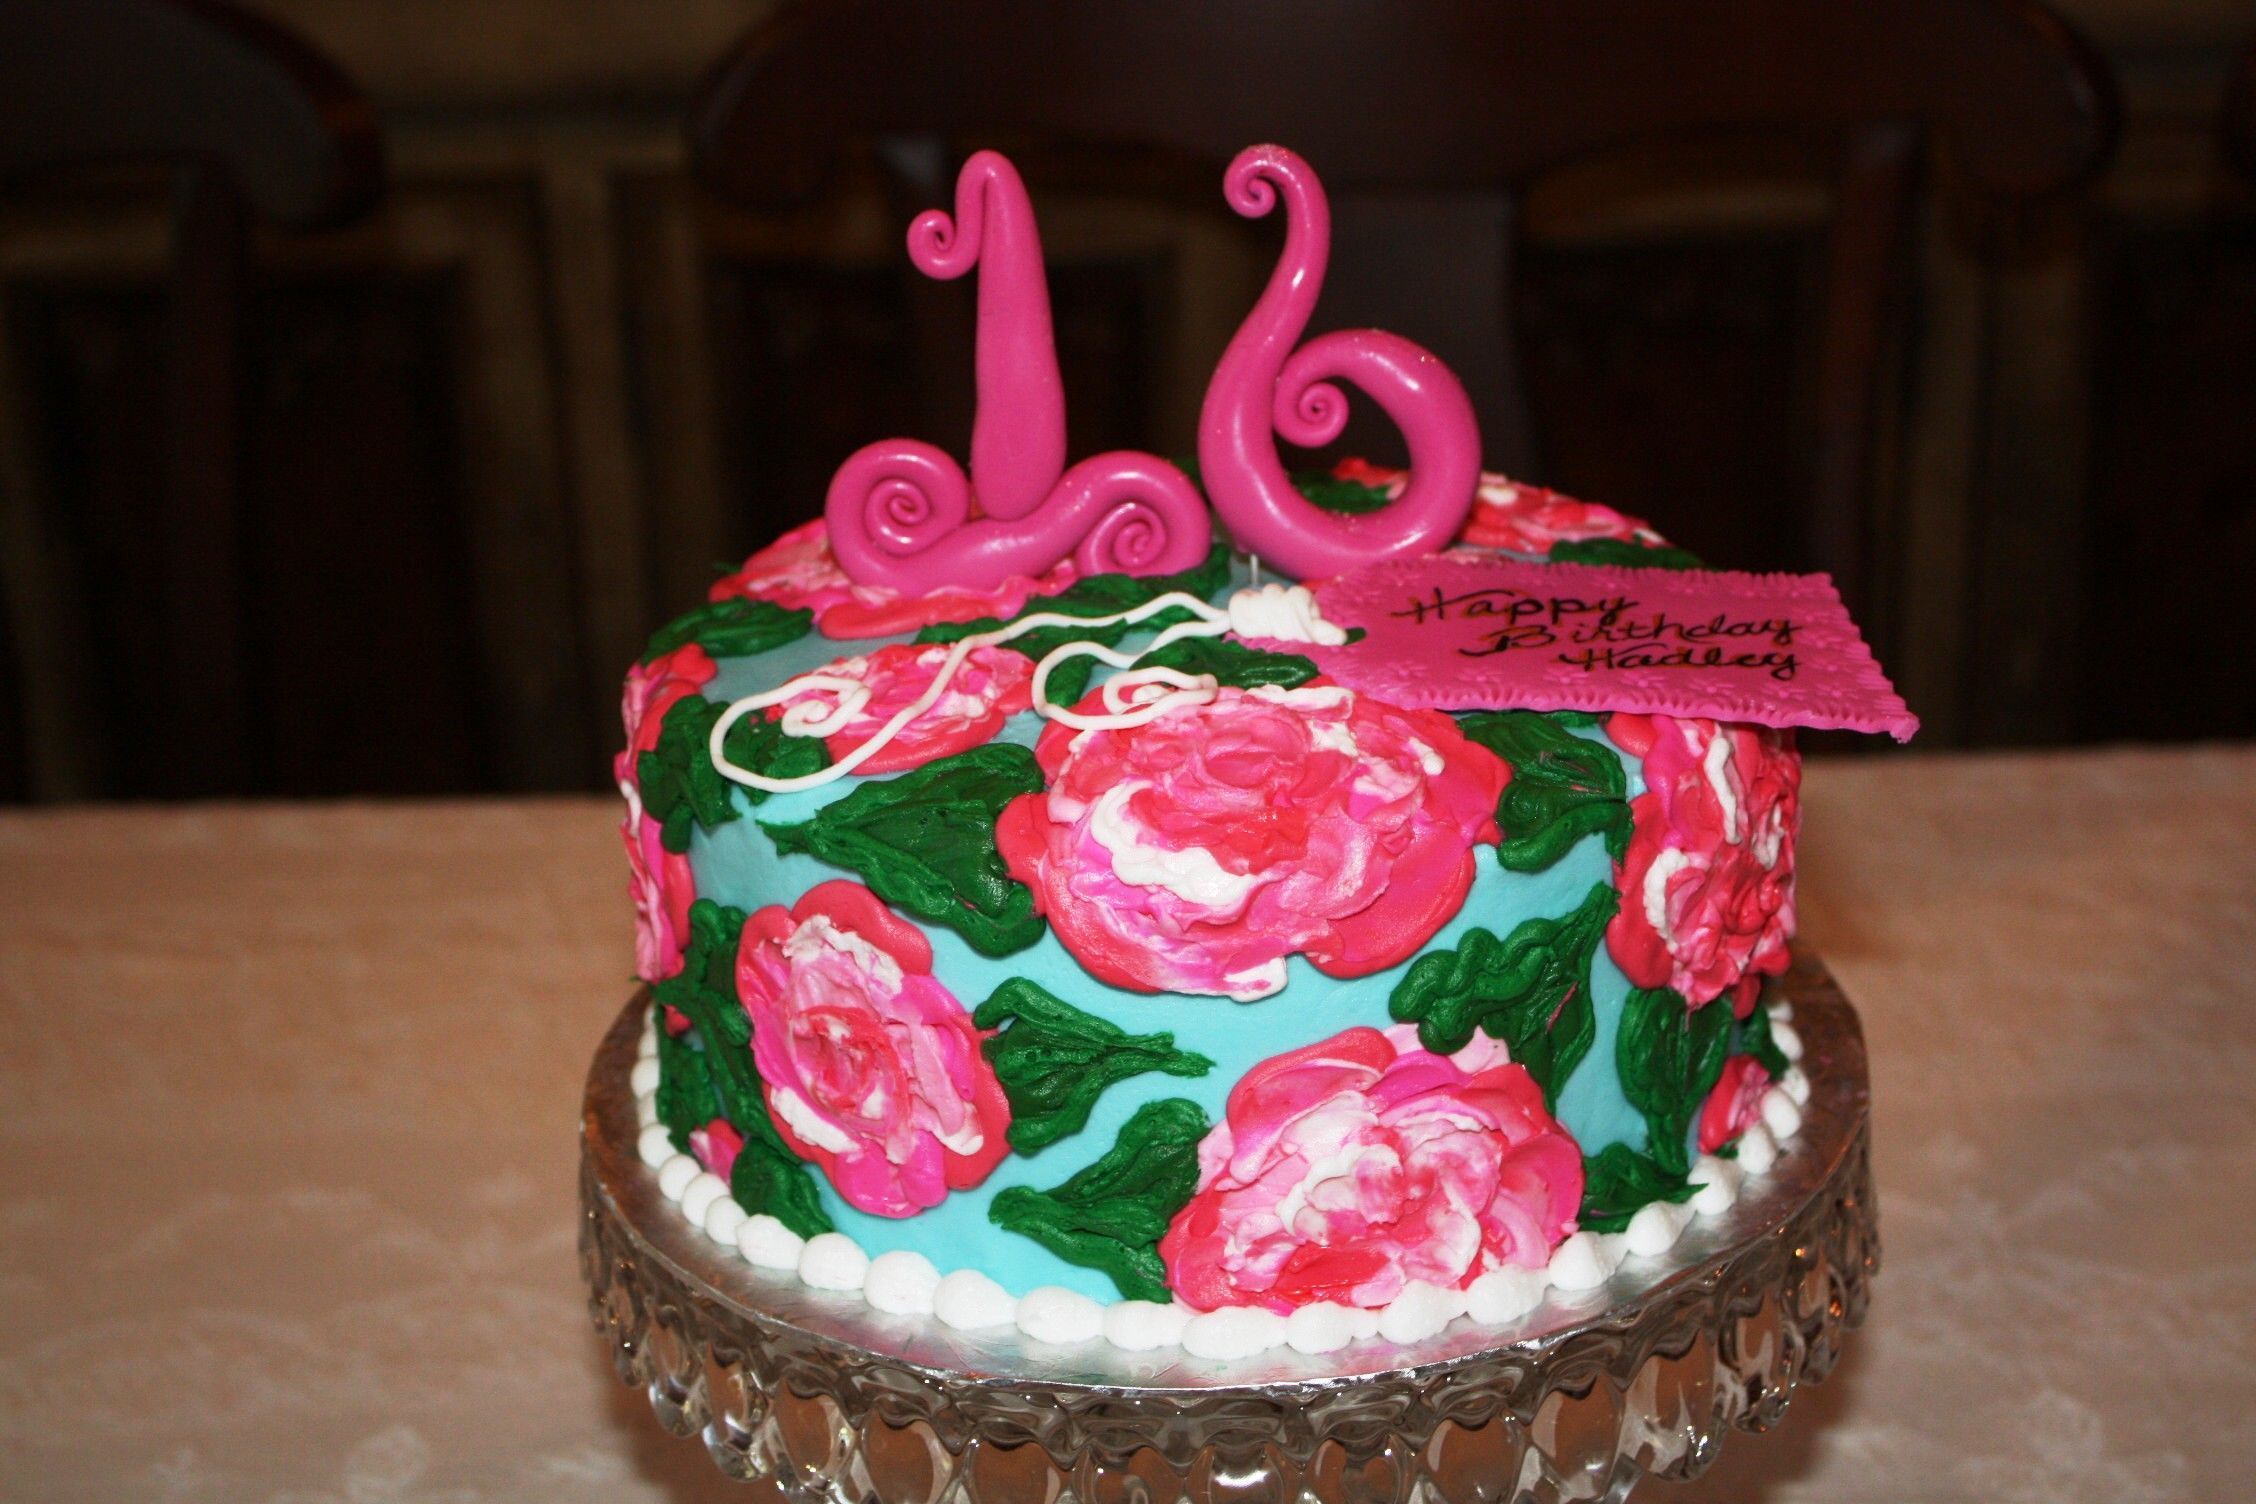 Sweet 16 Lilly Pulitzer cake from County Line Bakery EdmondOK